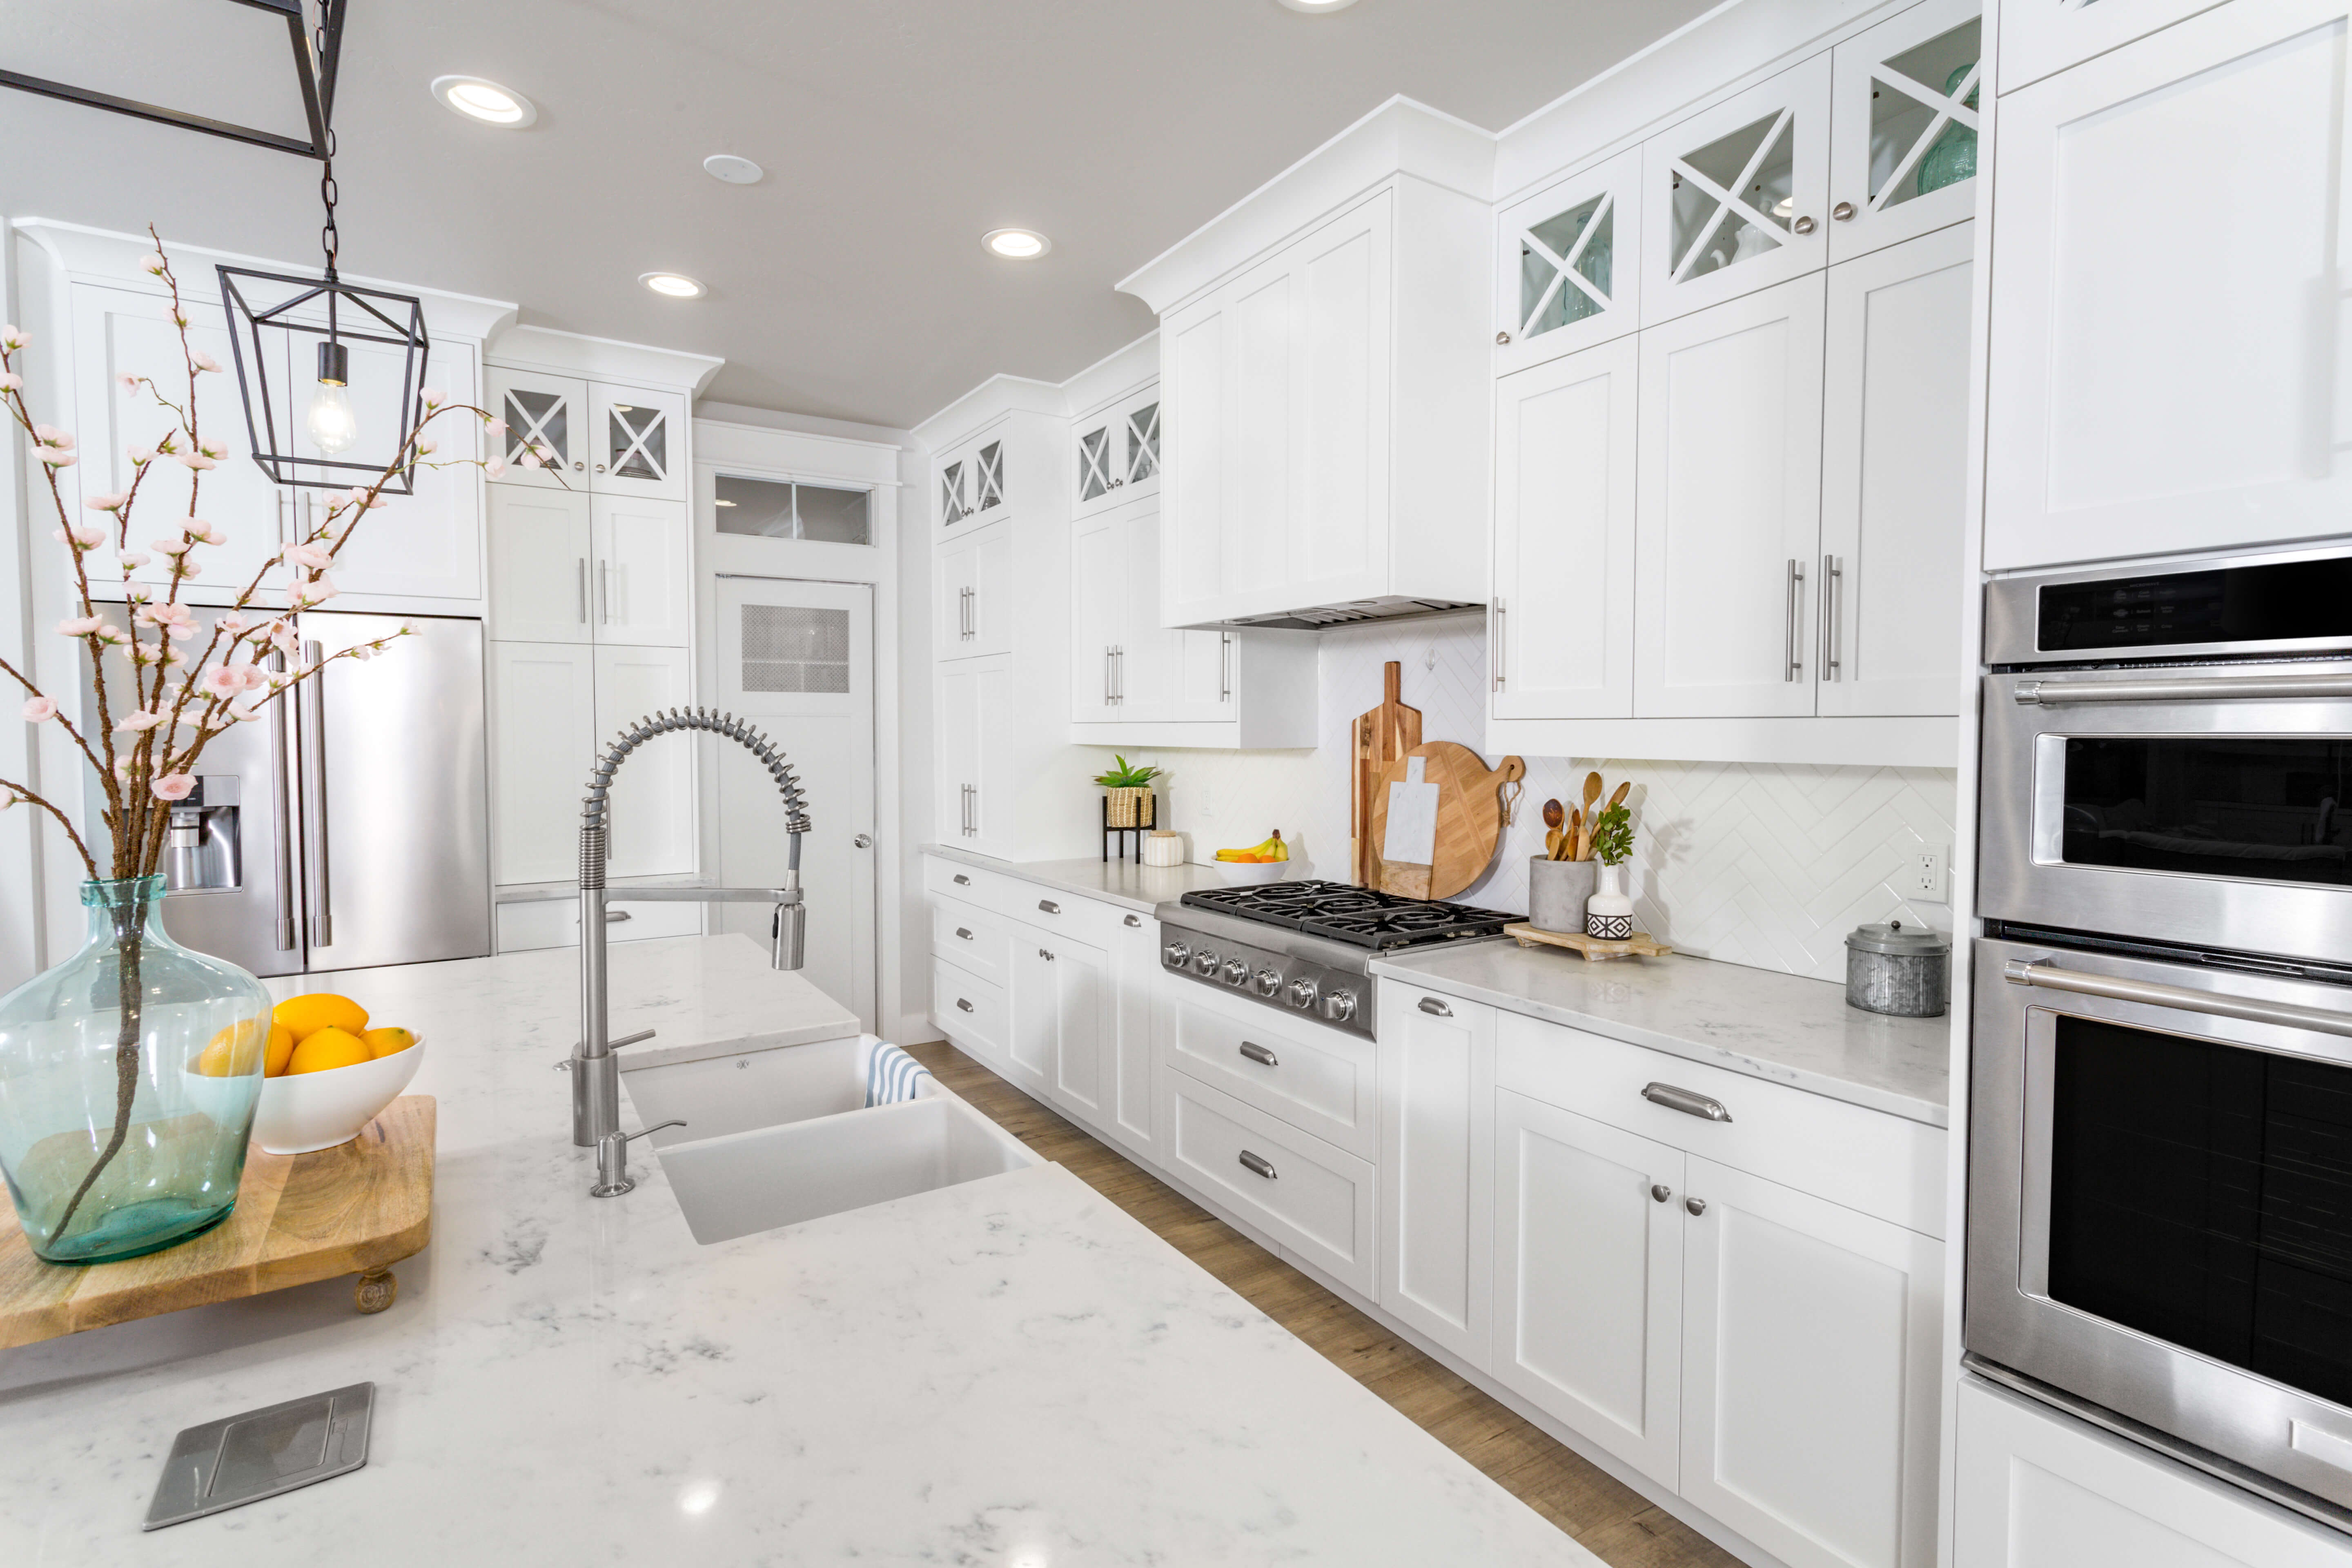 A remodeled kitchen in a modern farmhouse.